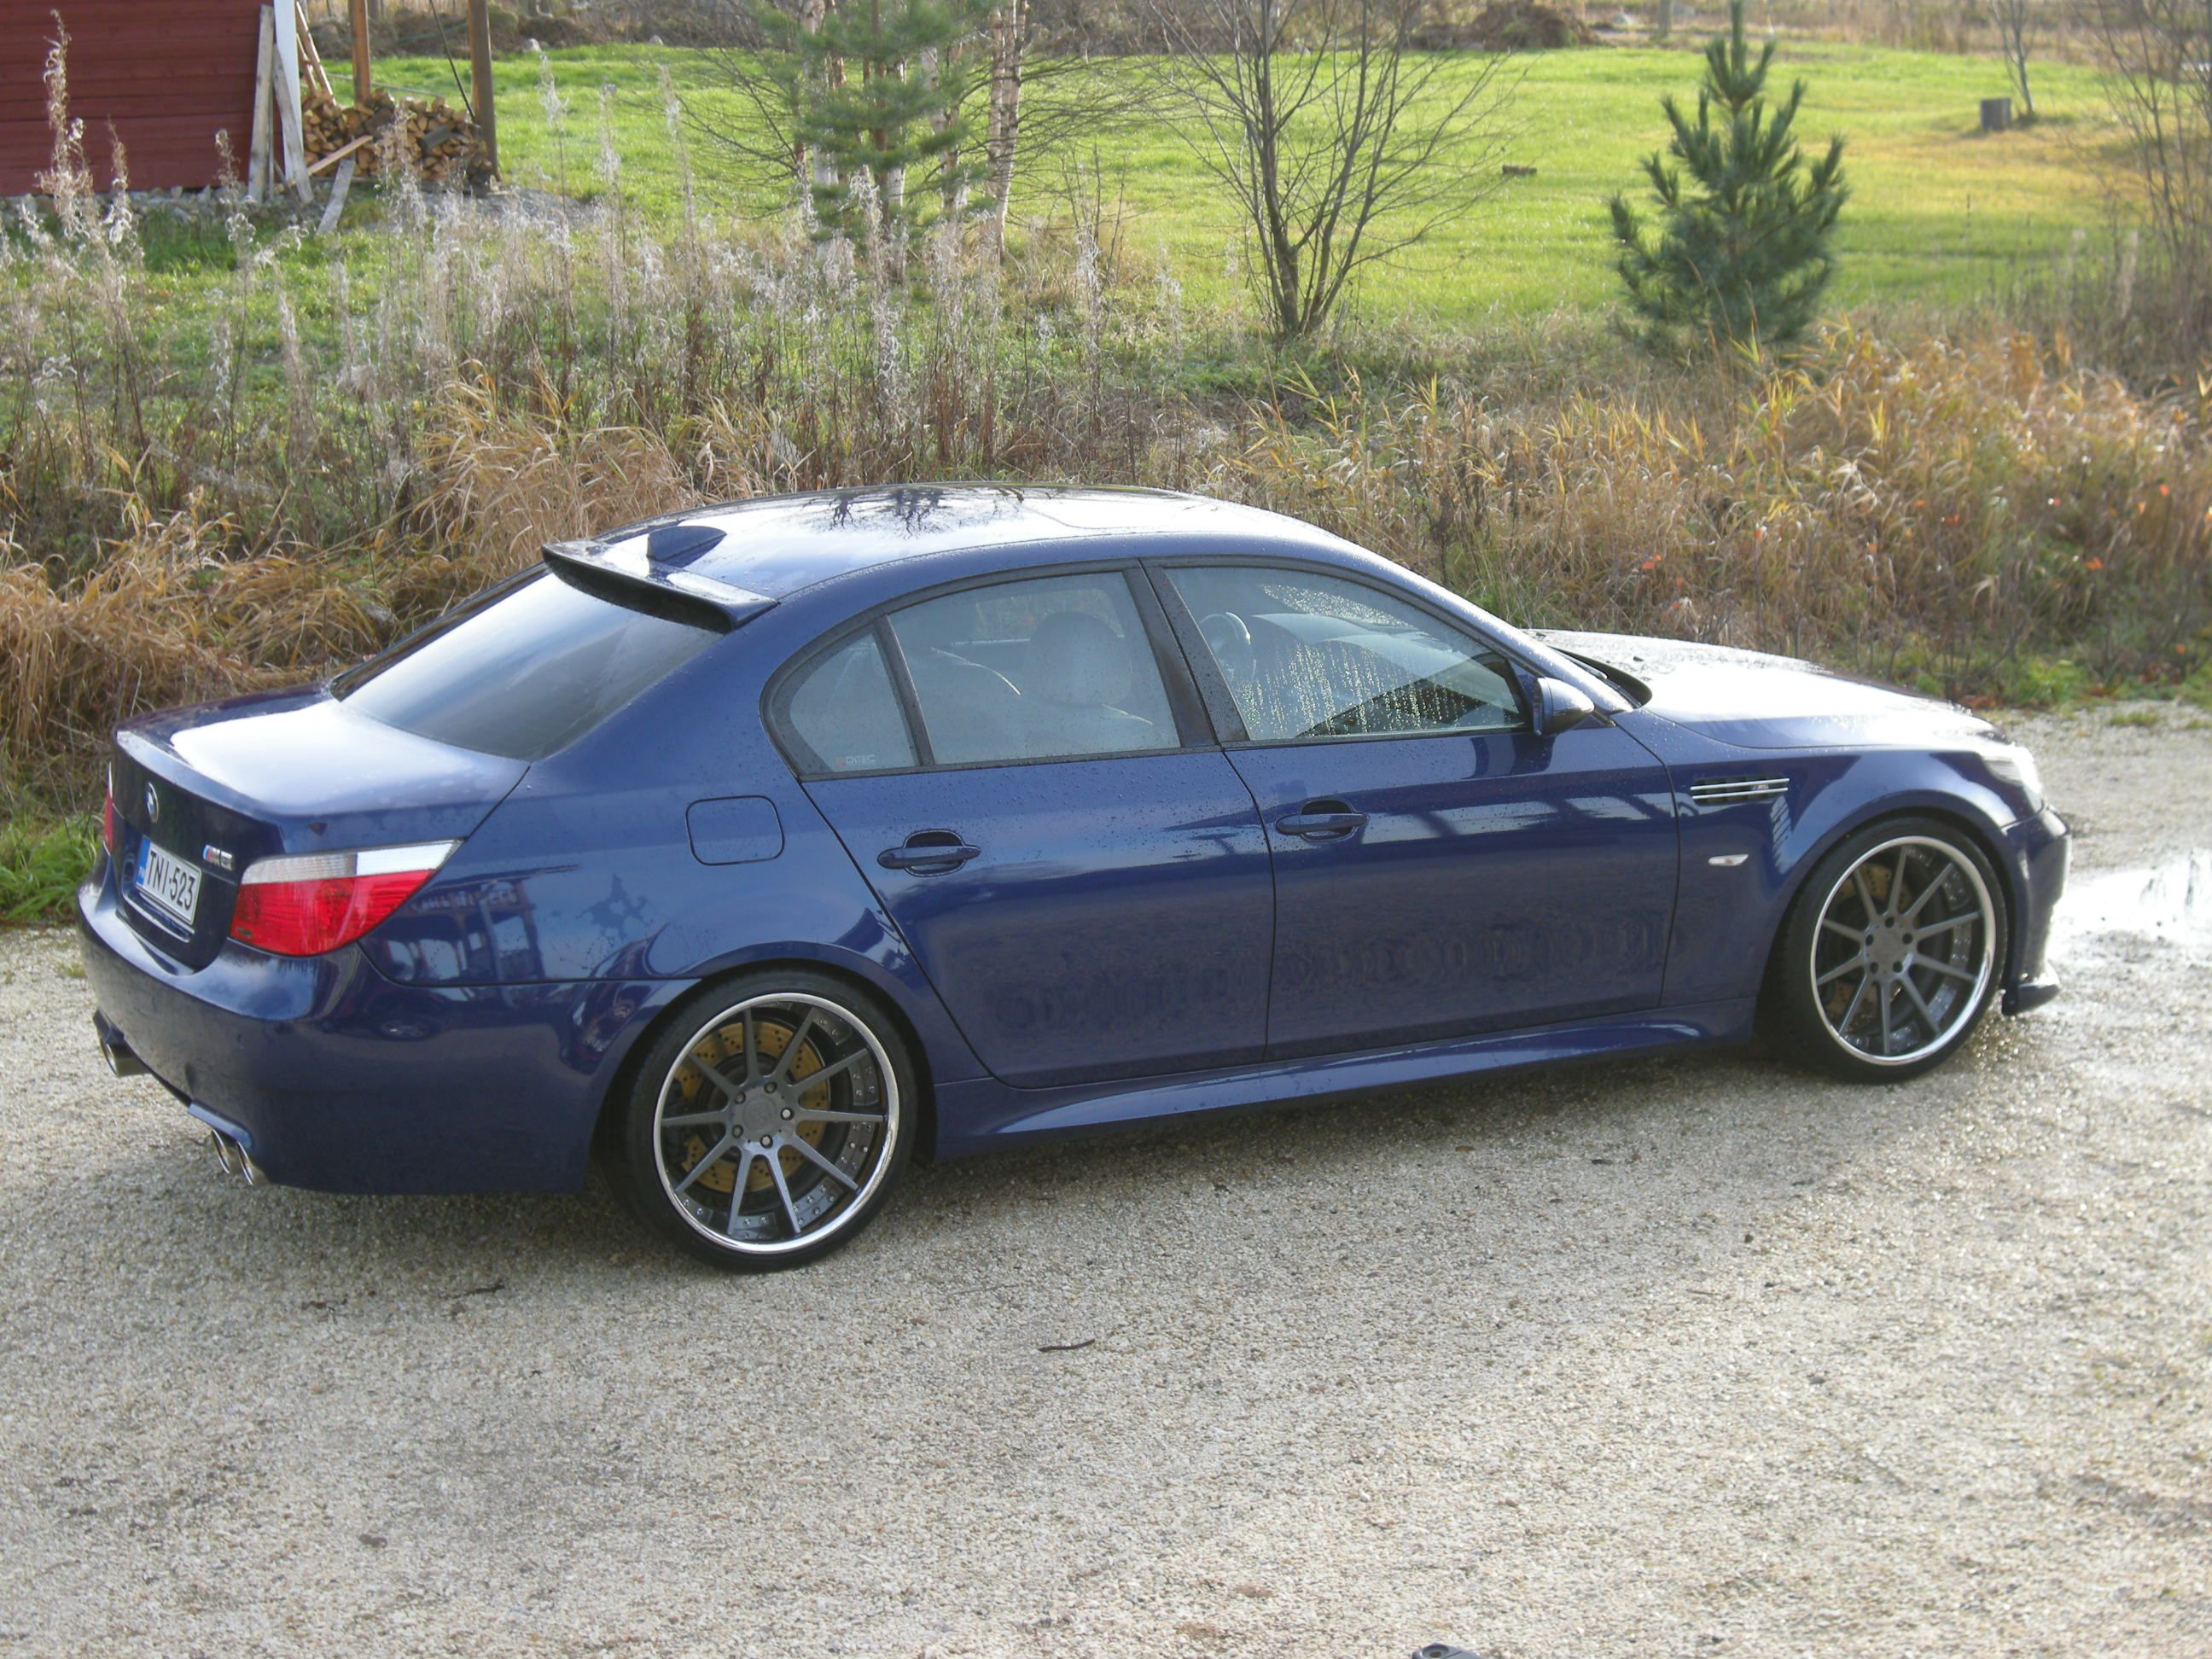 Best Wheels On E60 Post Your Pics Page 4 Bmw M5 Forum And M6 Forums